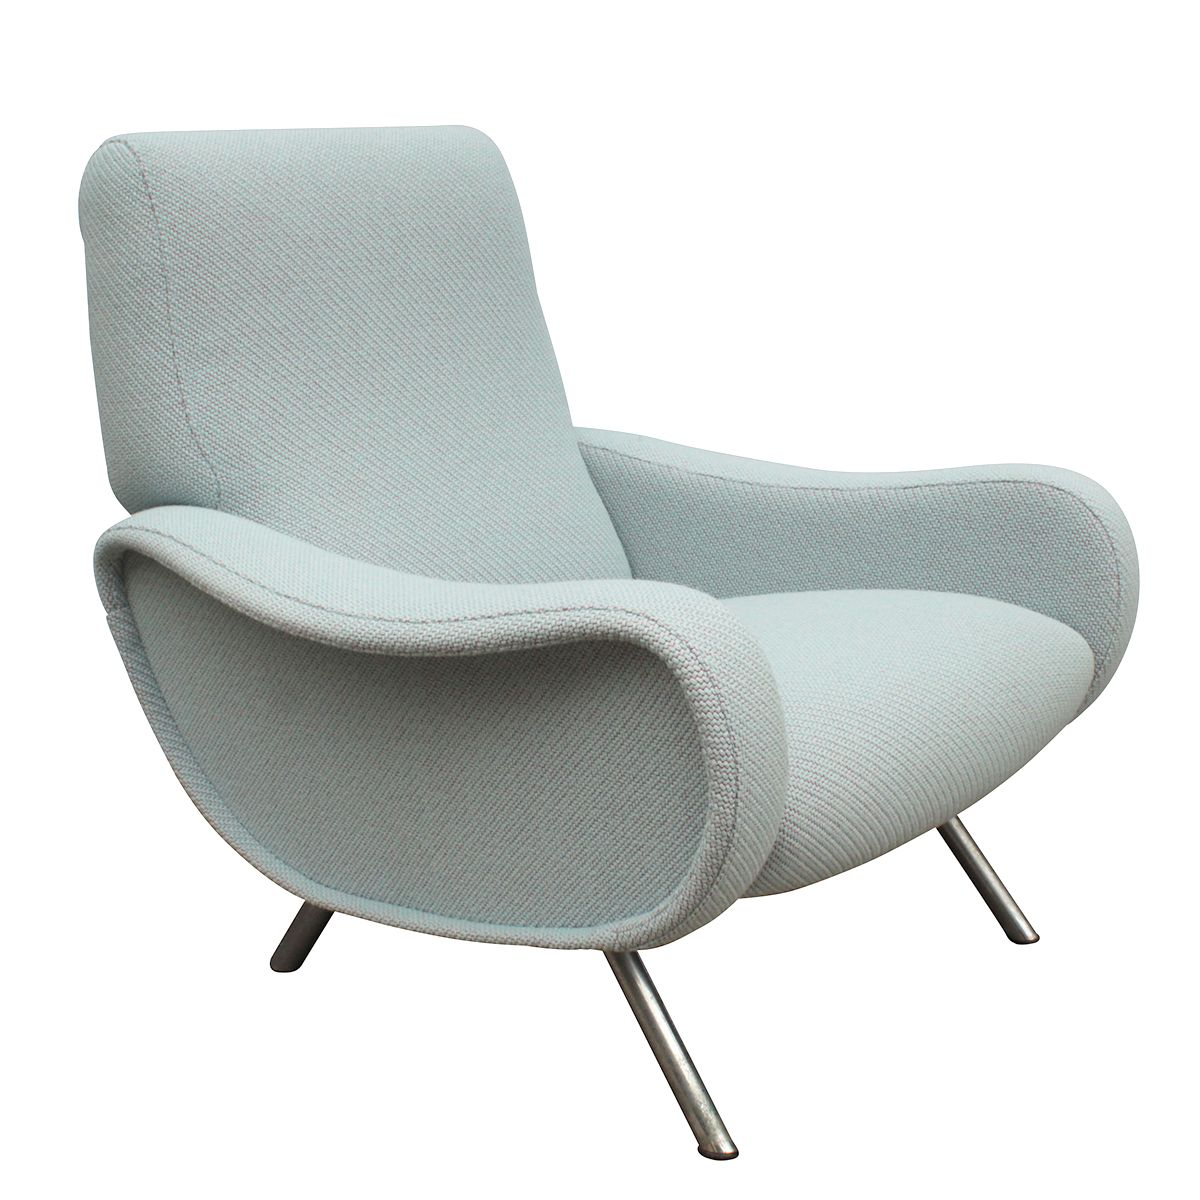 Lady Armchair By Marco Zanuso For Arflex 1960s For Sale